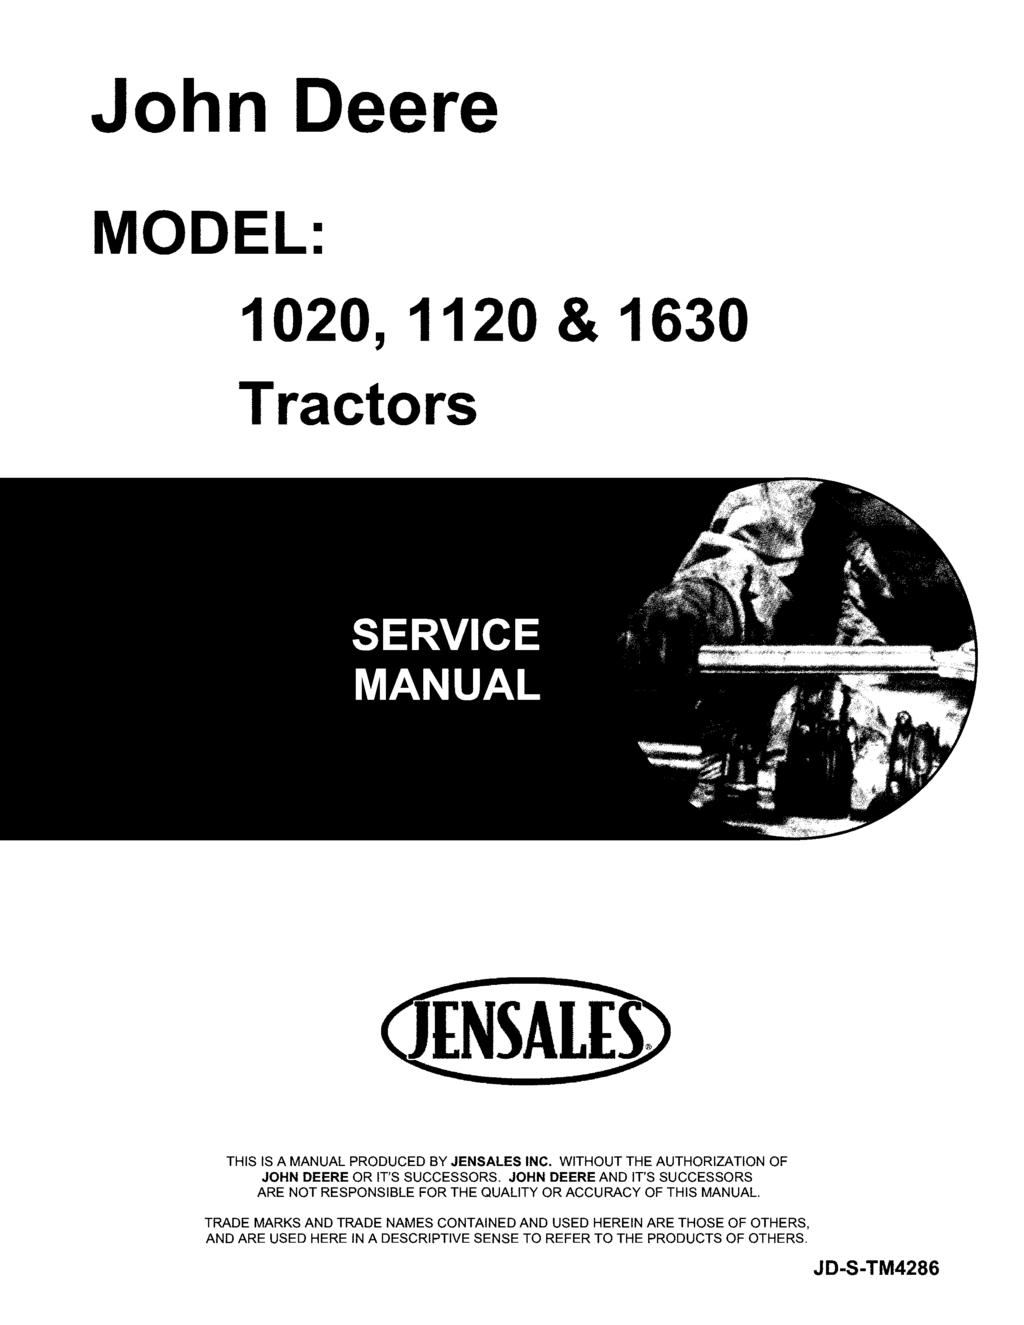 John Deere MODEL: 1020, 1120 & 1630 Tractors THIS IS A MANUAL PRODUCED BY